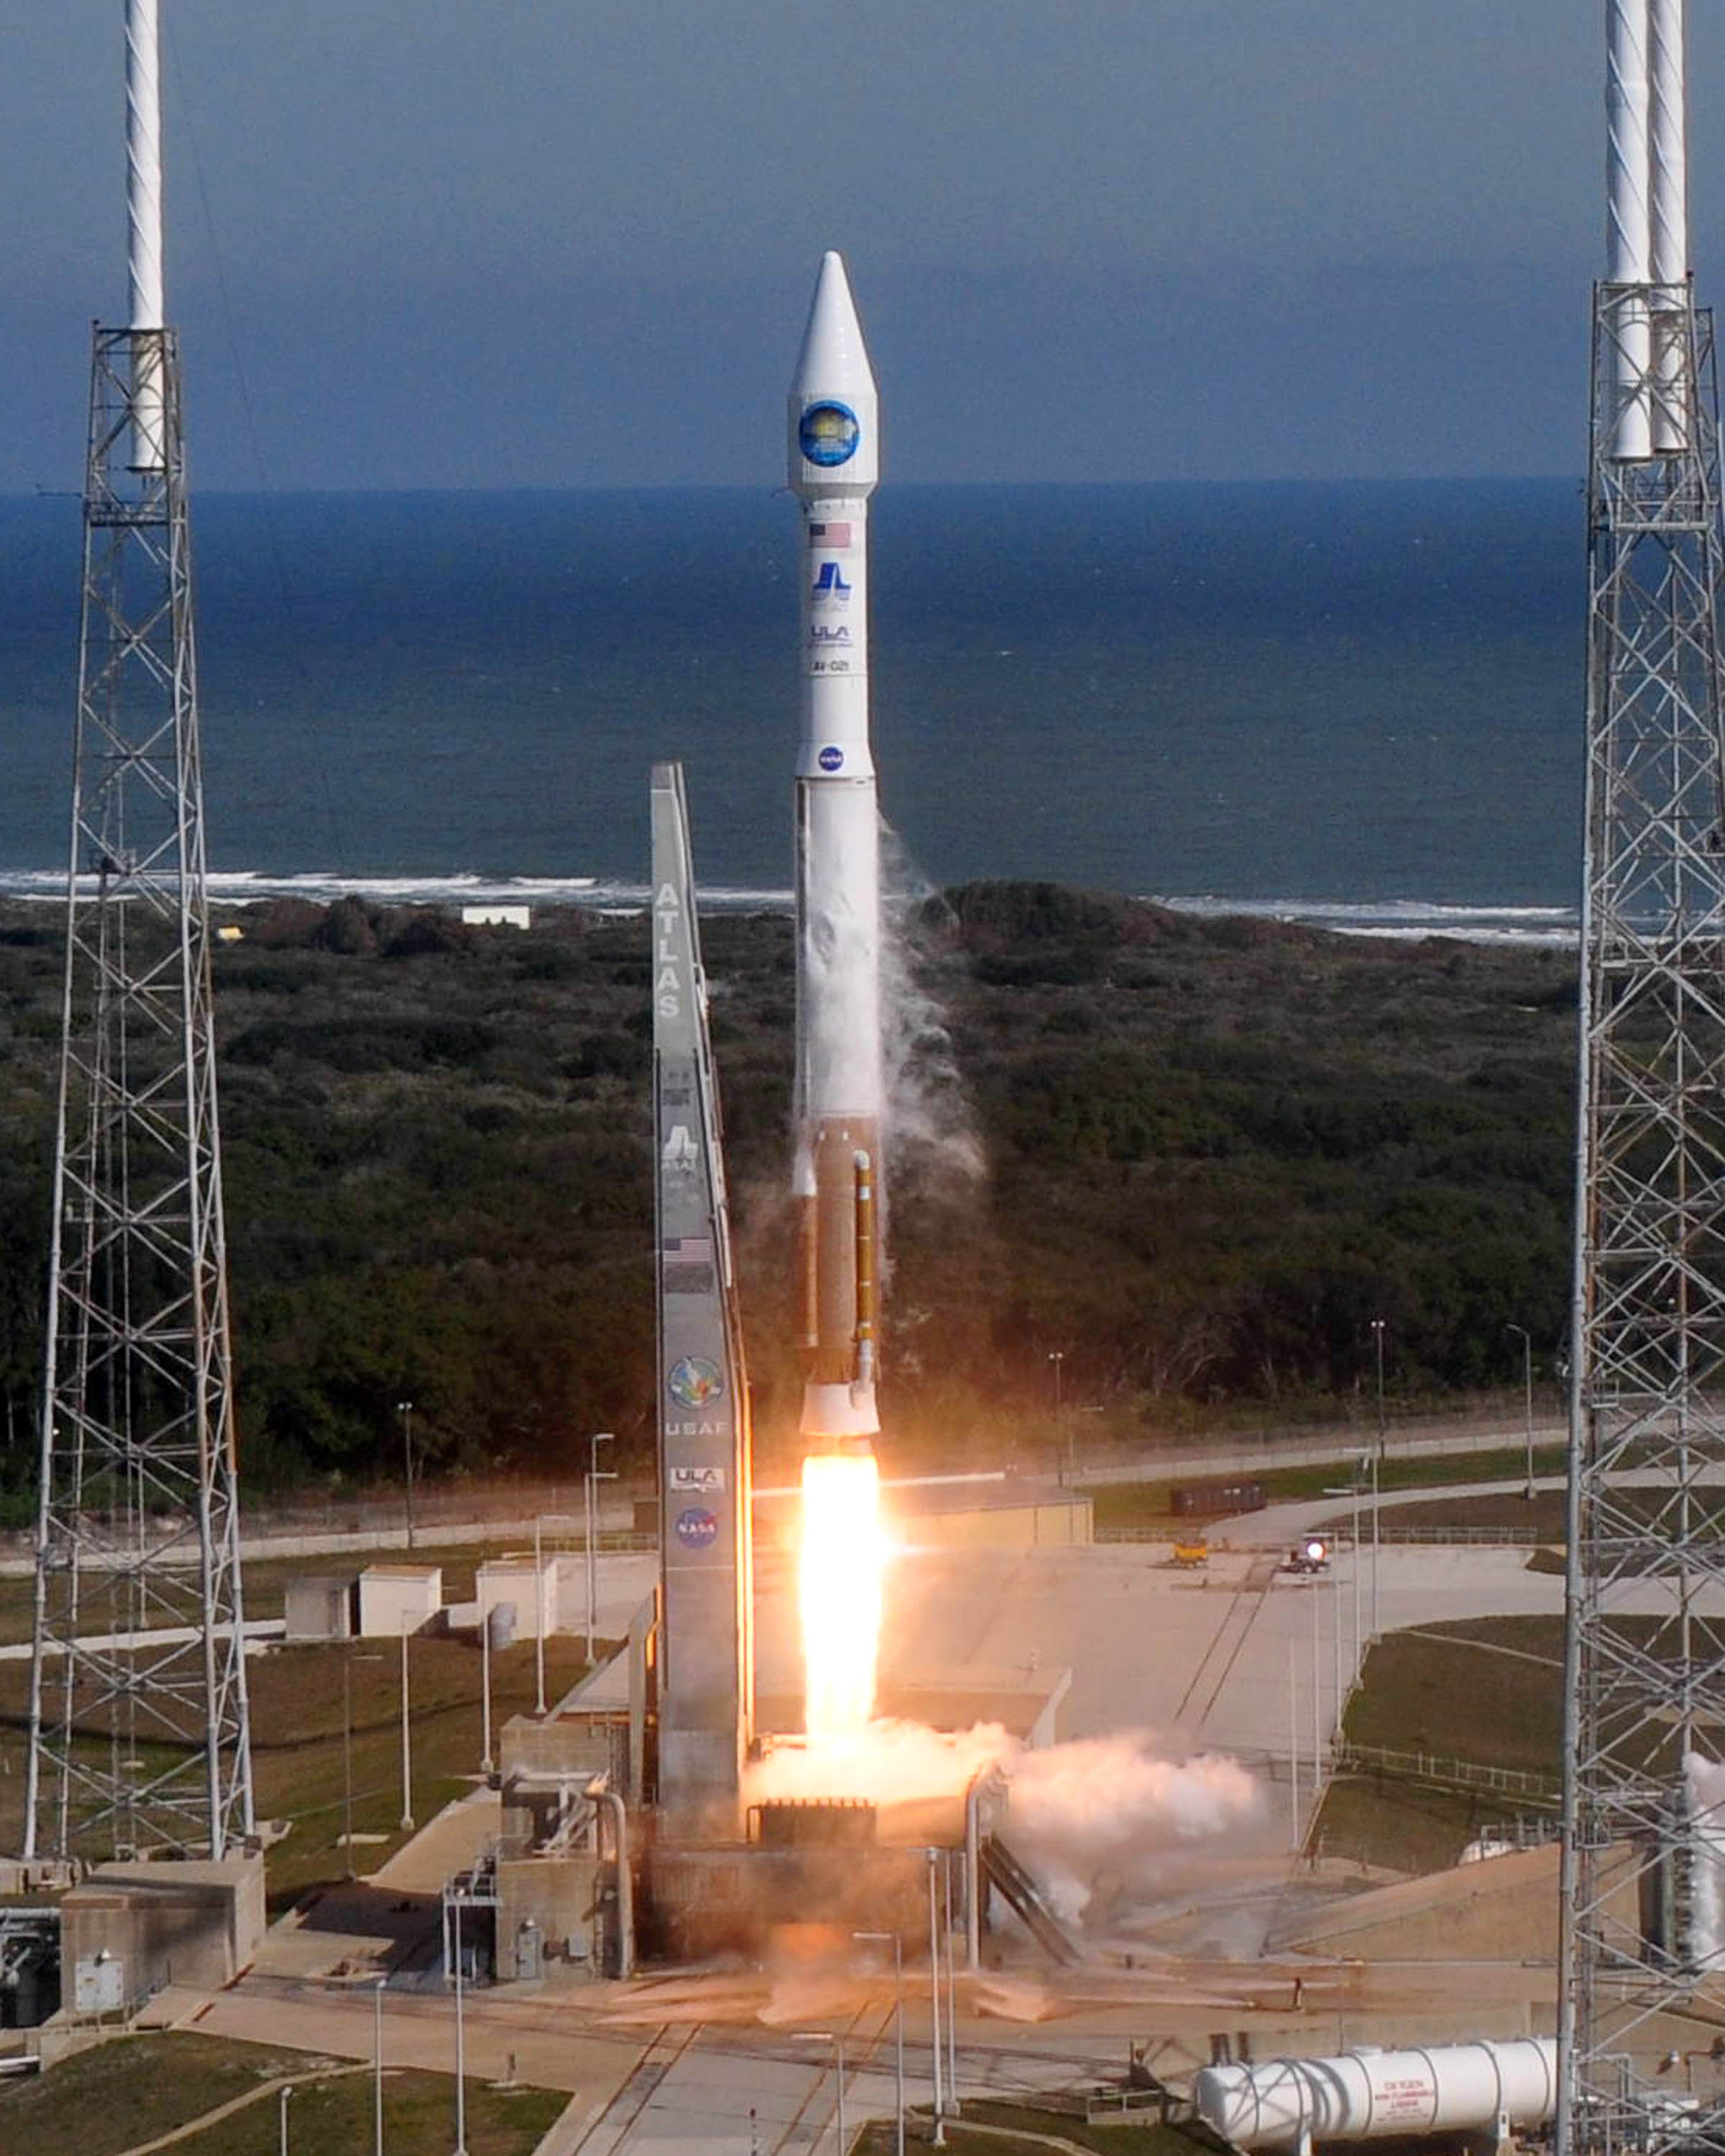 nasa s solar dynamics observatory or sdo launched at 10